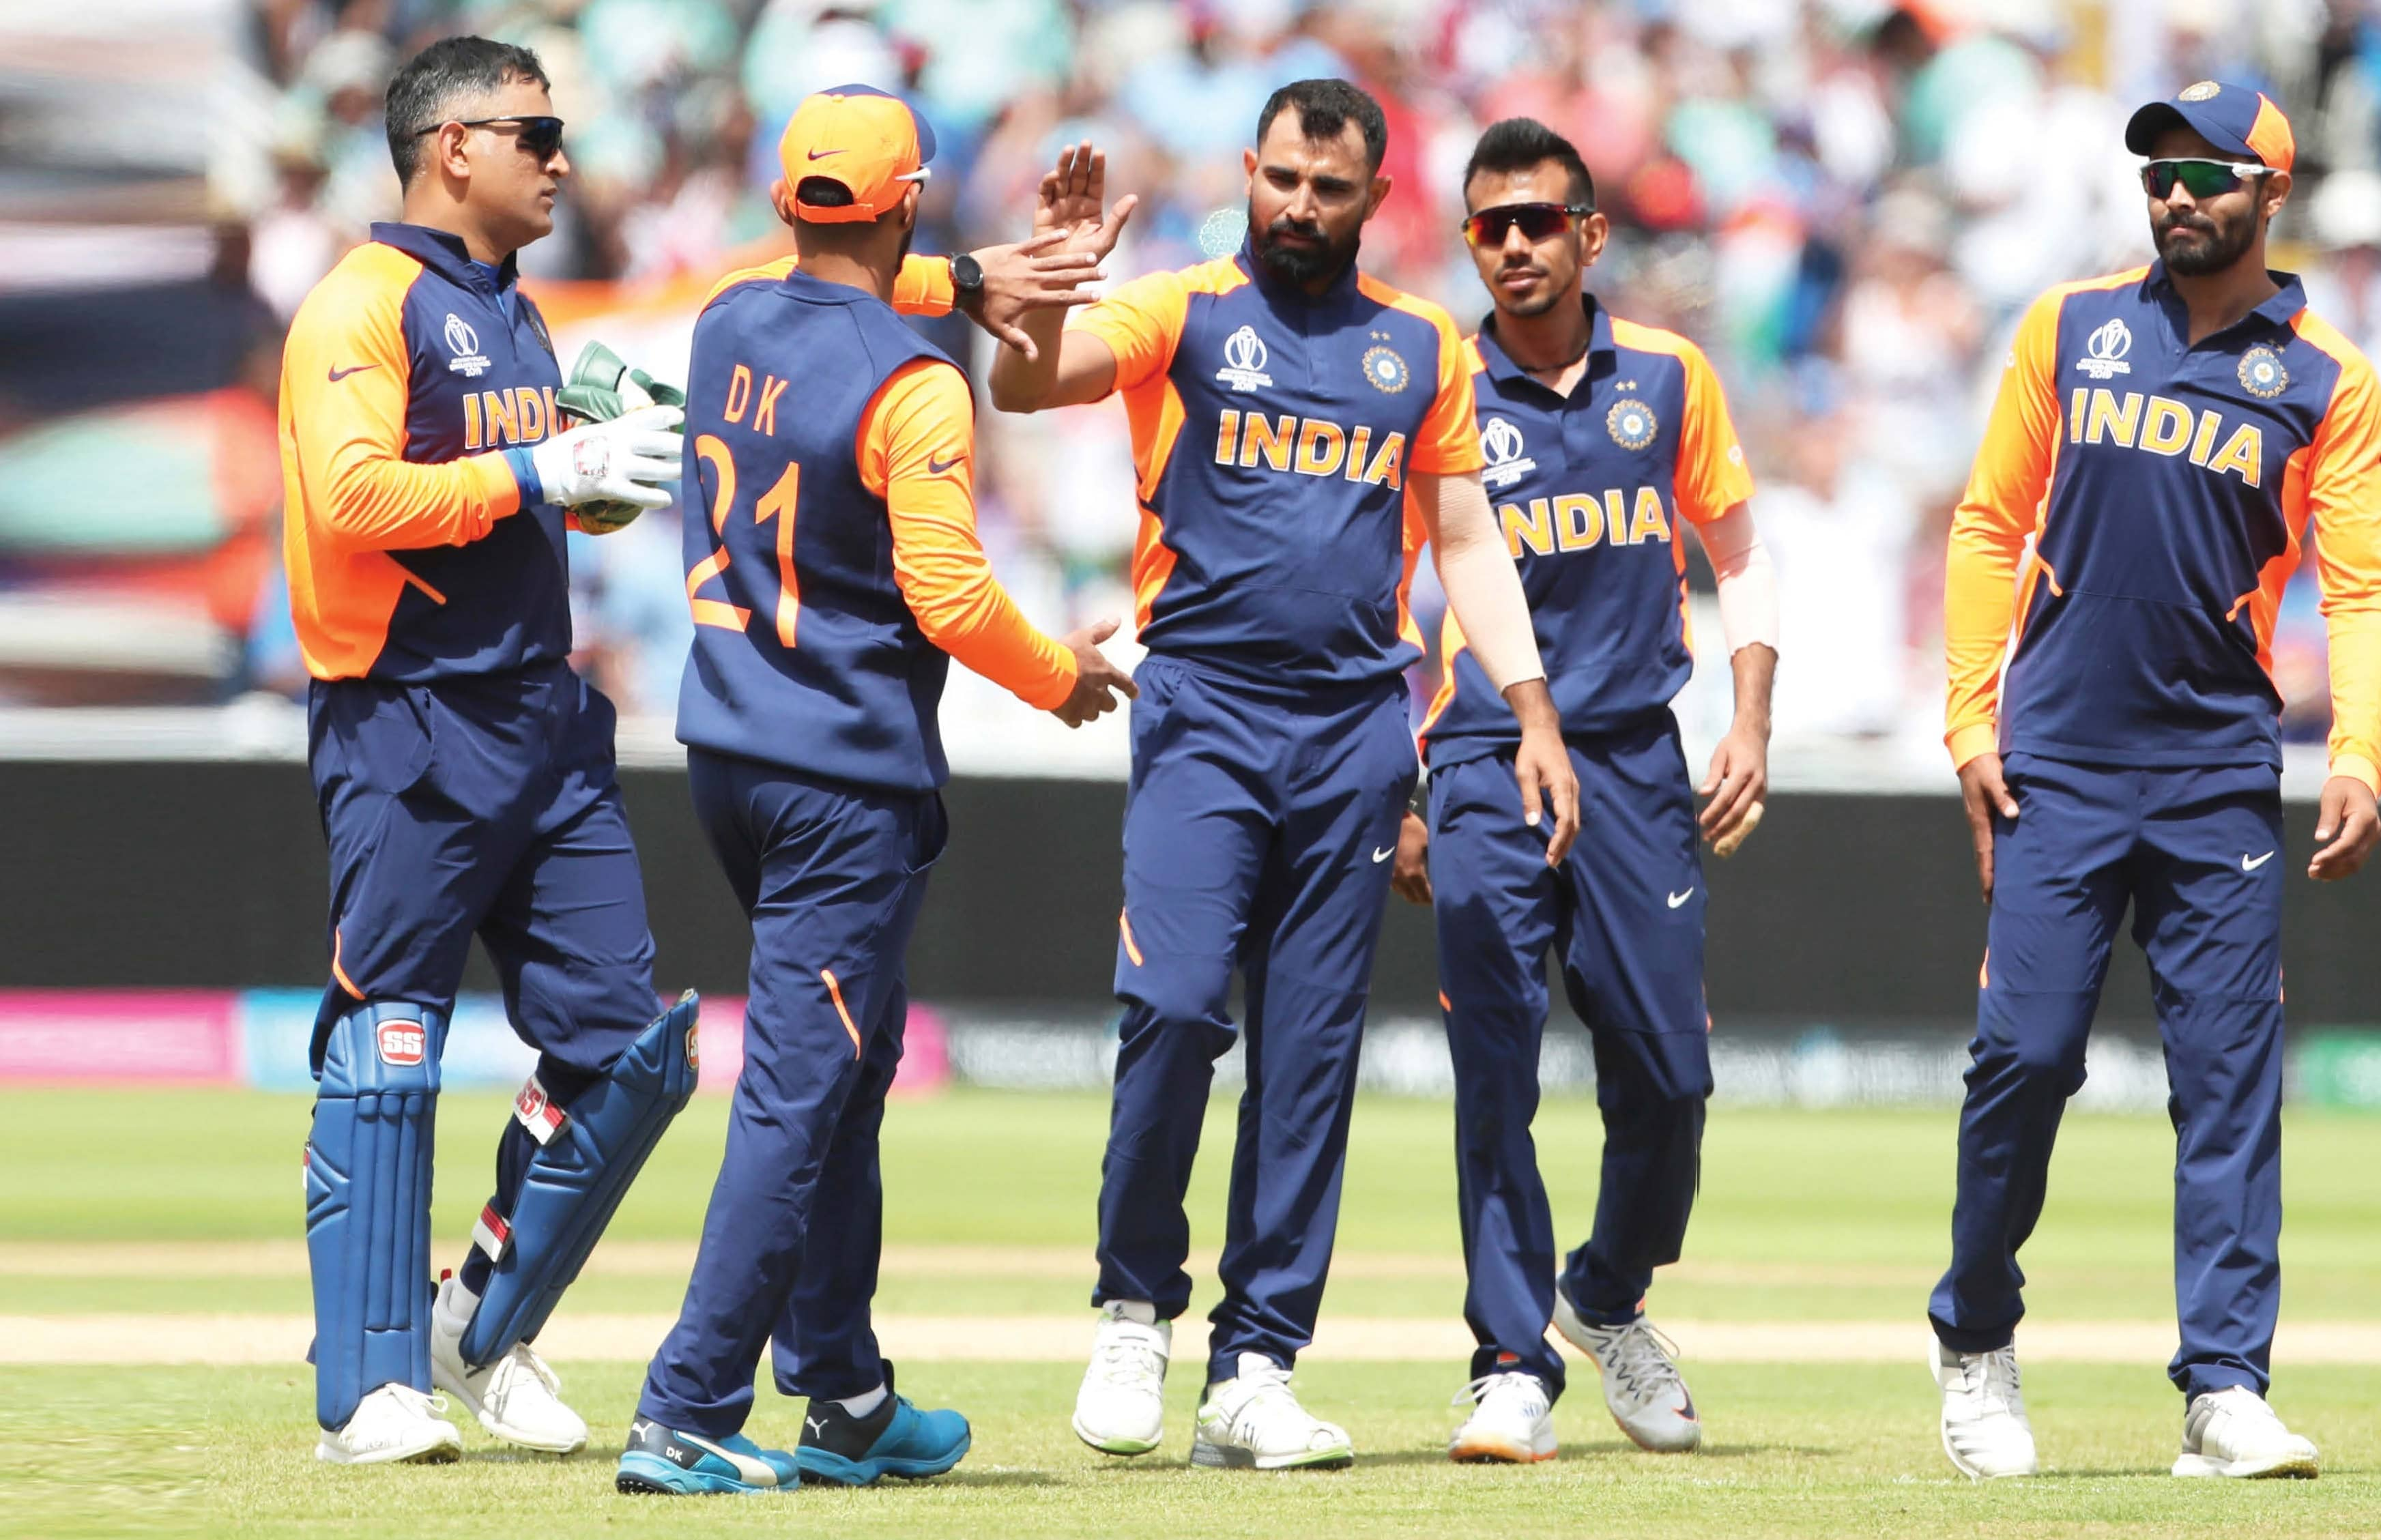 The Post-Mortem India's World Cup Campaign Ends In A Heartbreak